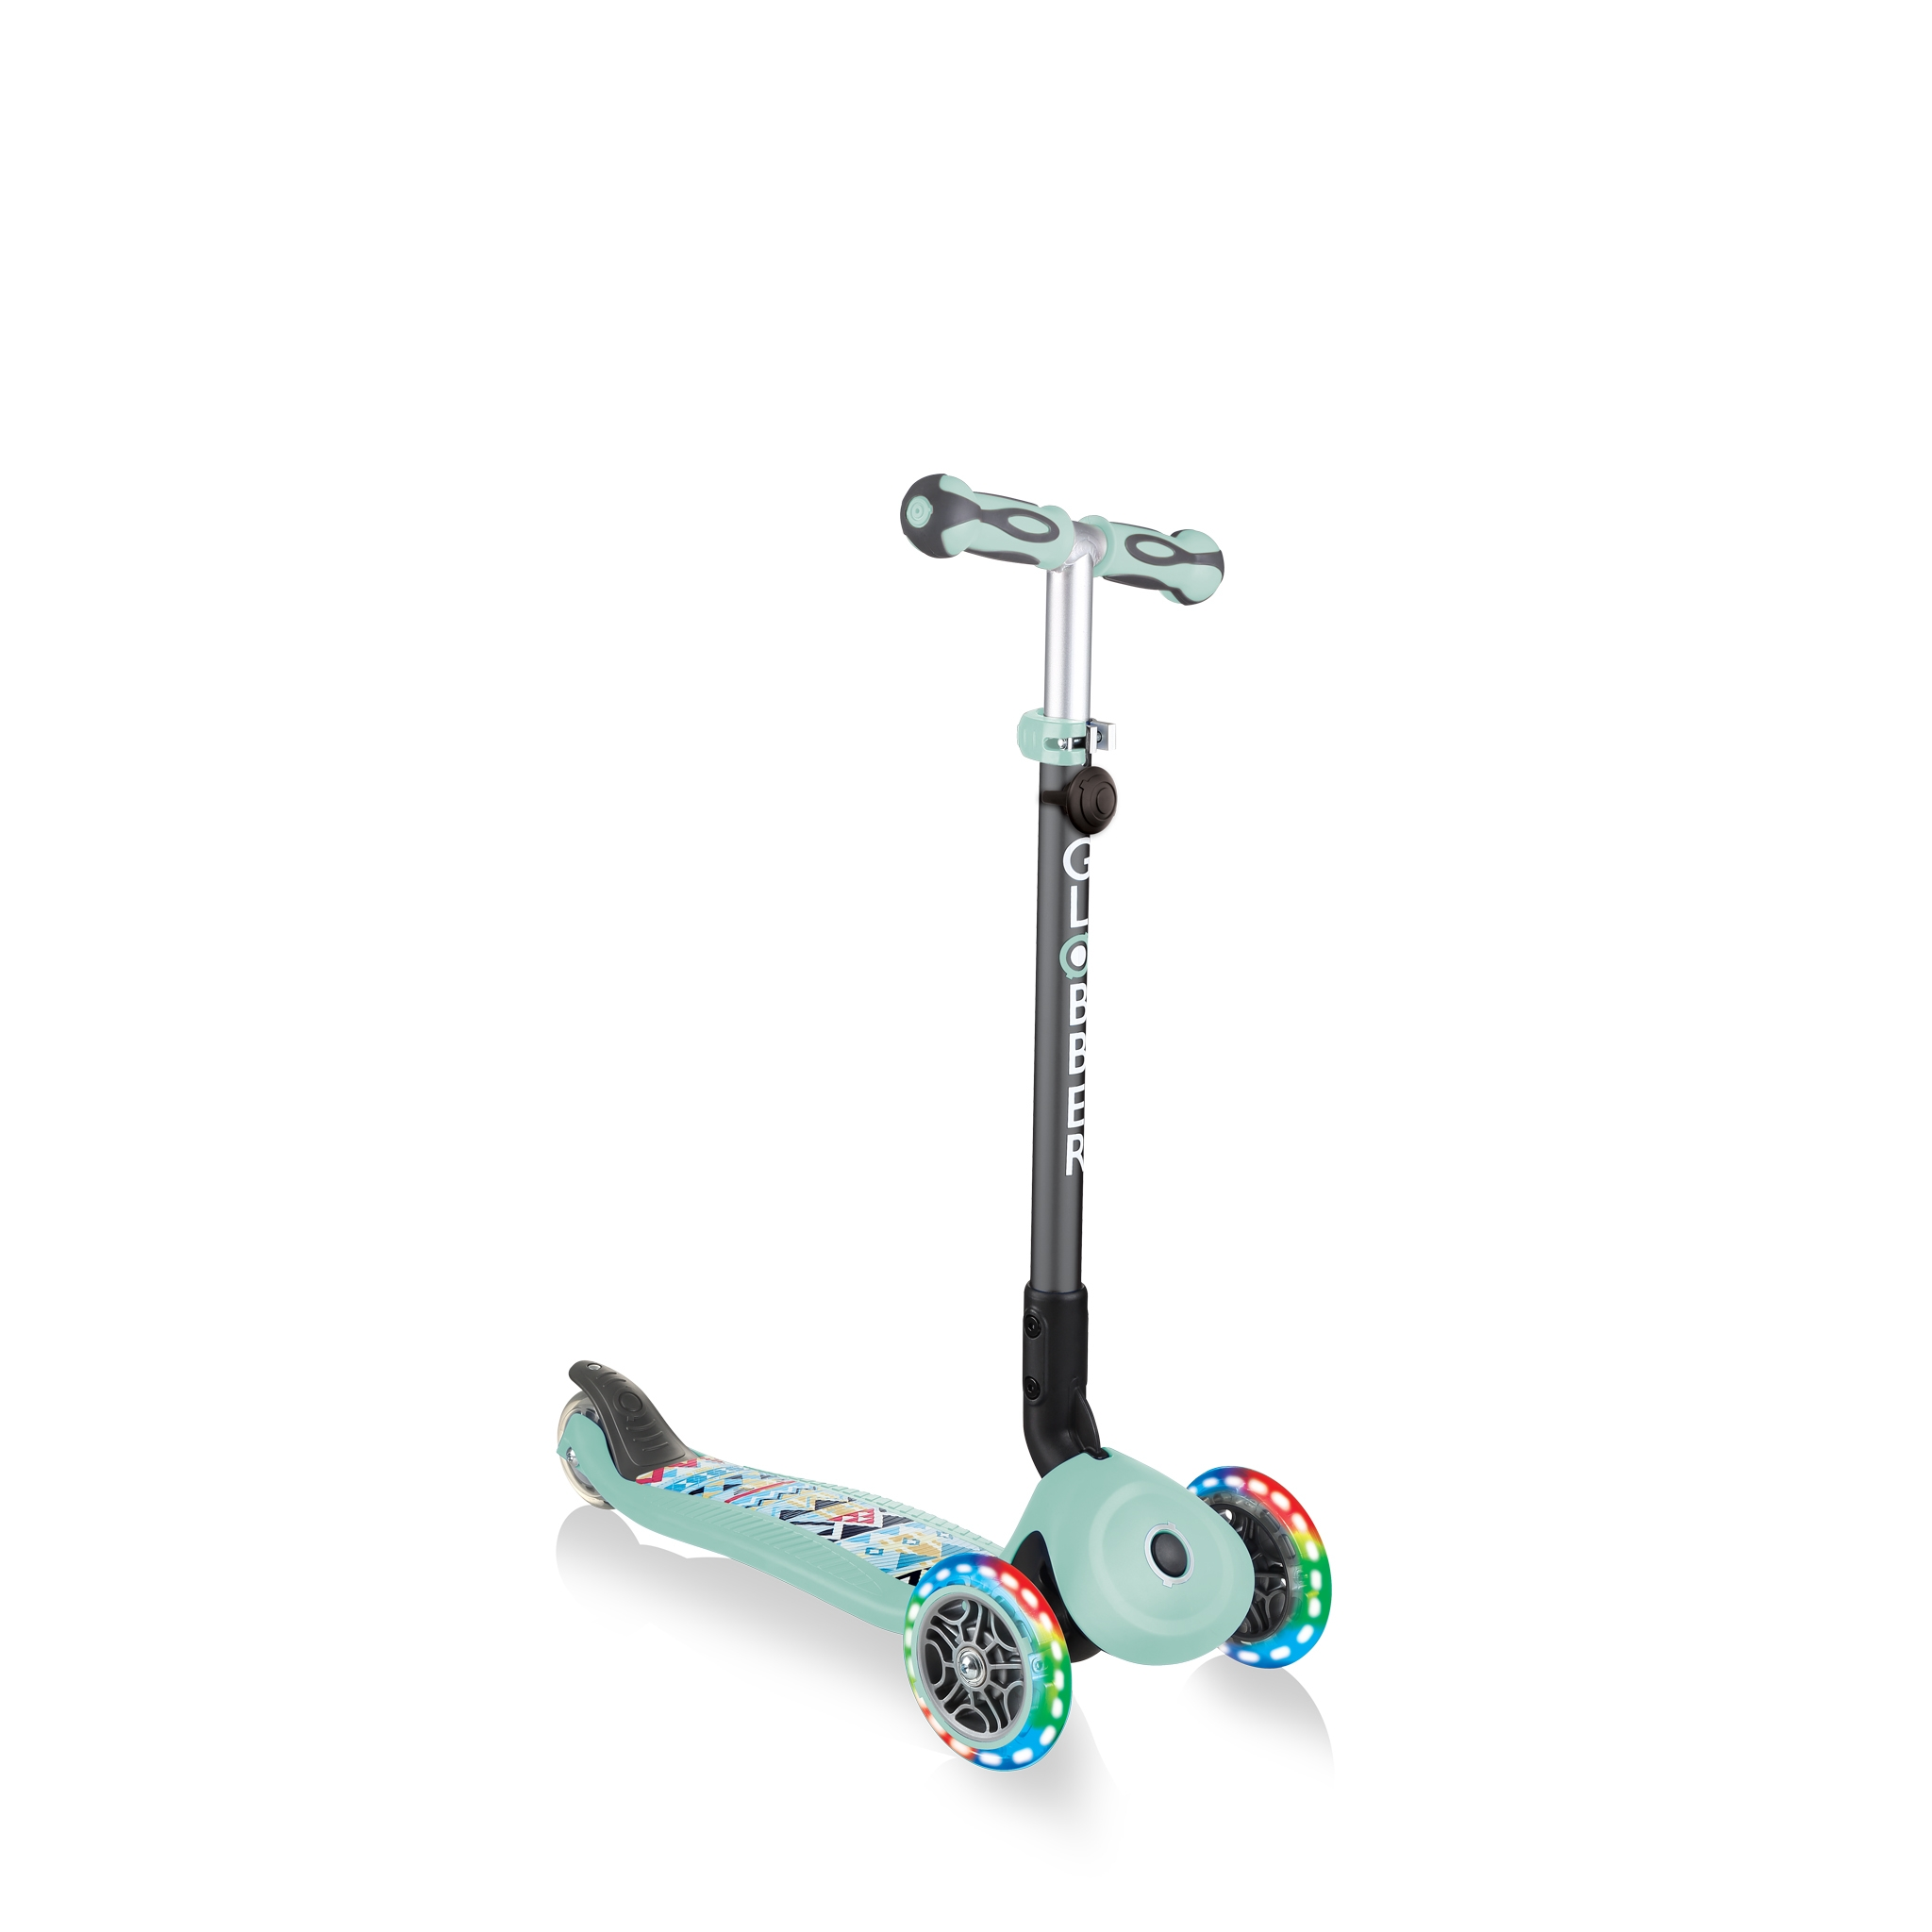 light-up-scooter-for-toddlers-GO-UP-DELUXE-FANTASY-LIGHTS 6